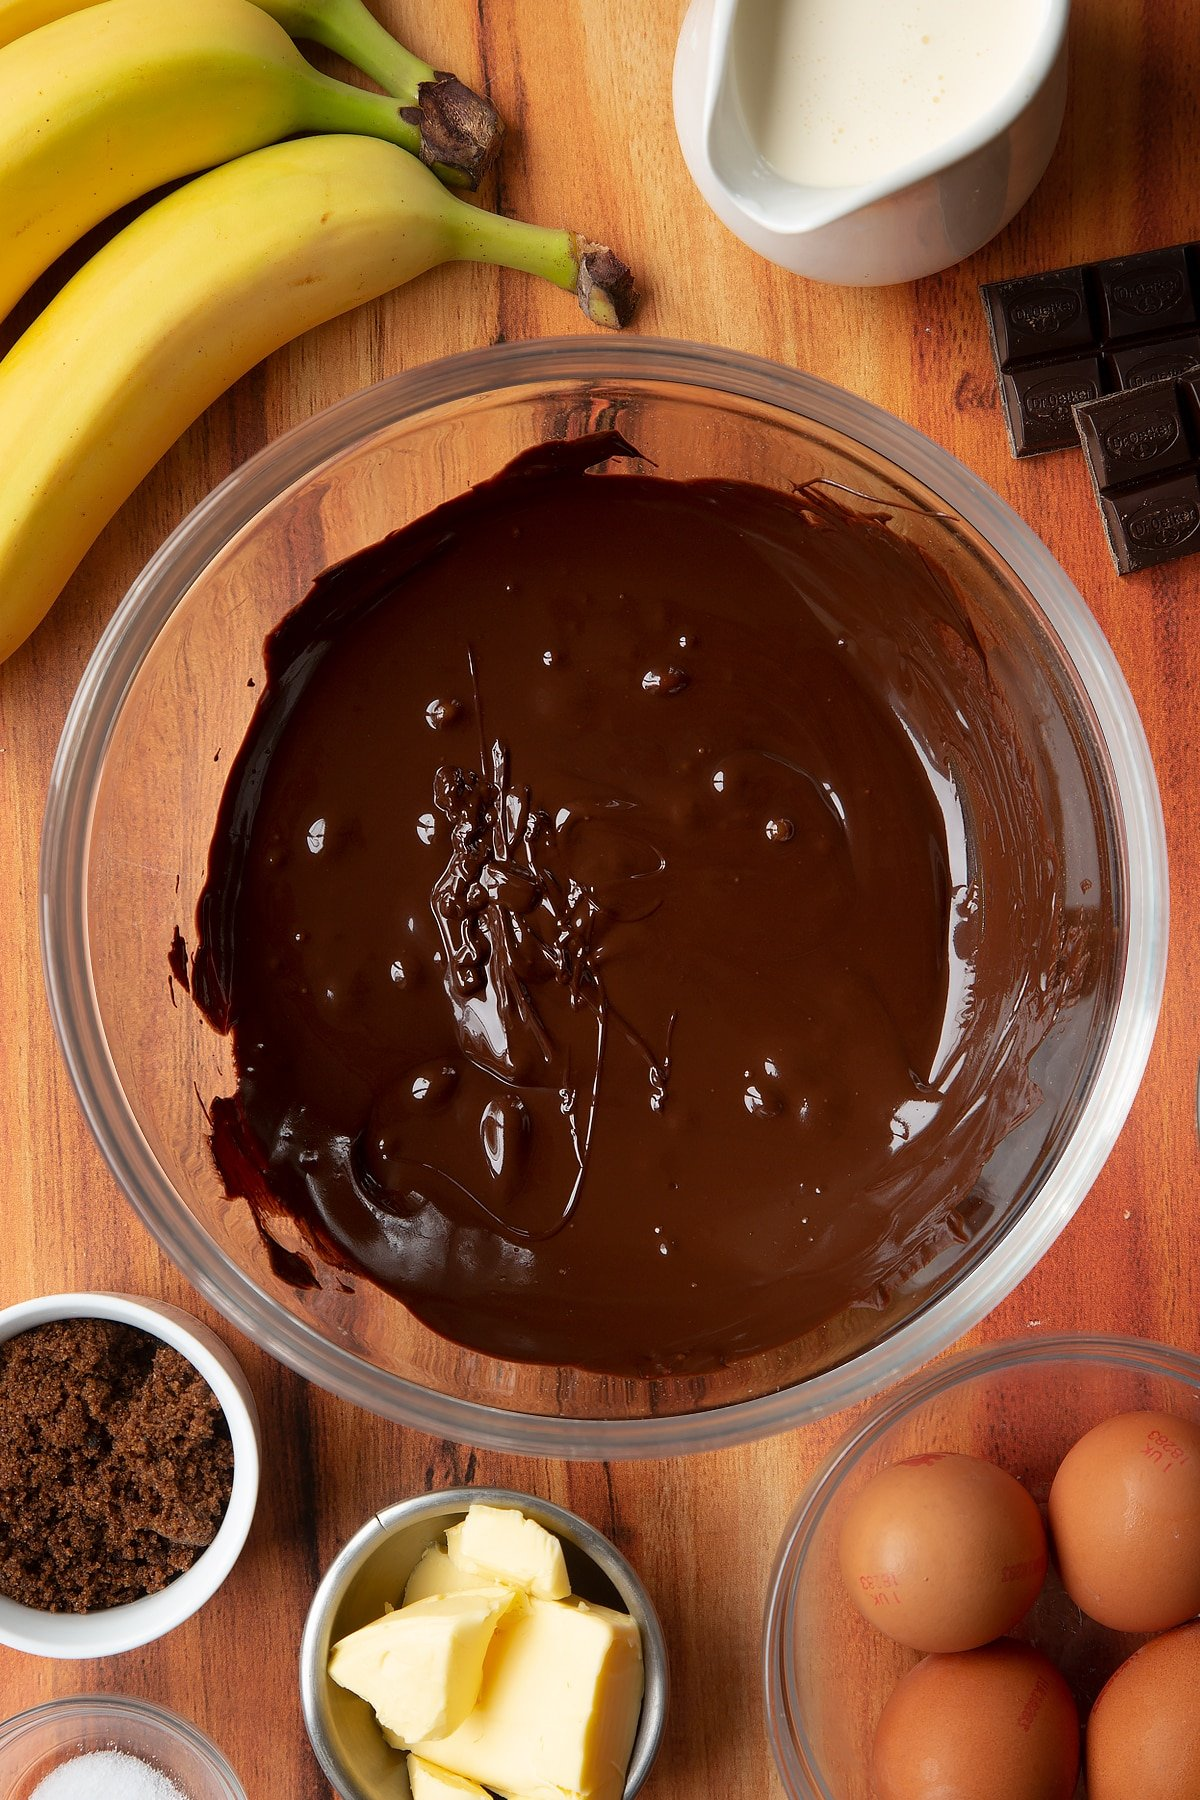 Melted chocolate in a clear mixing bowl.